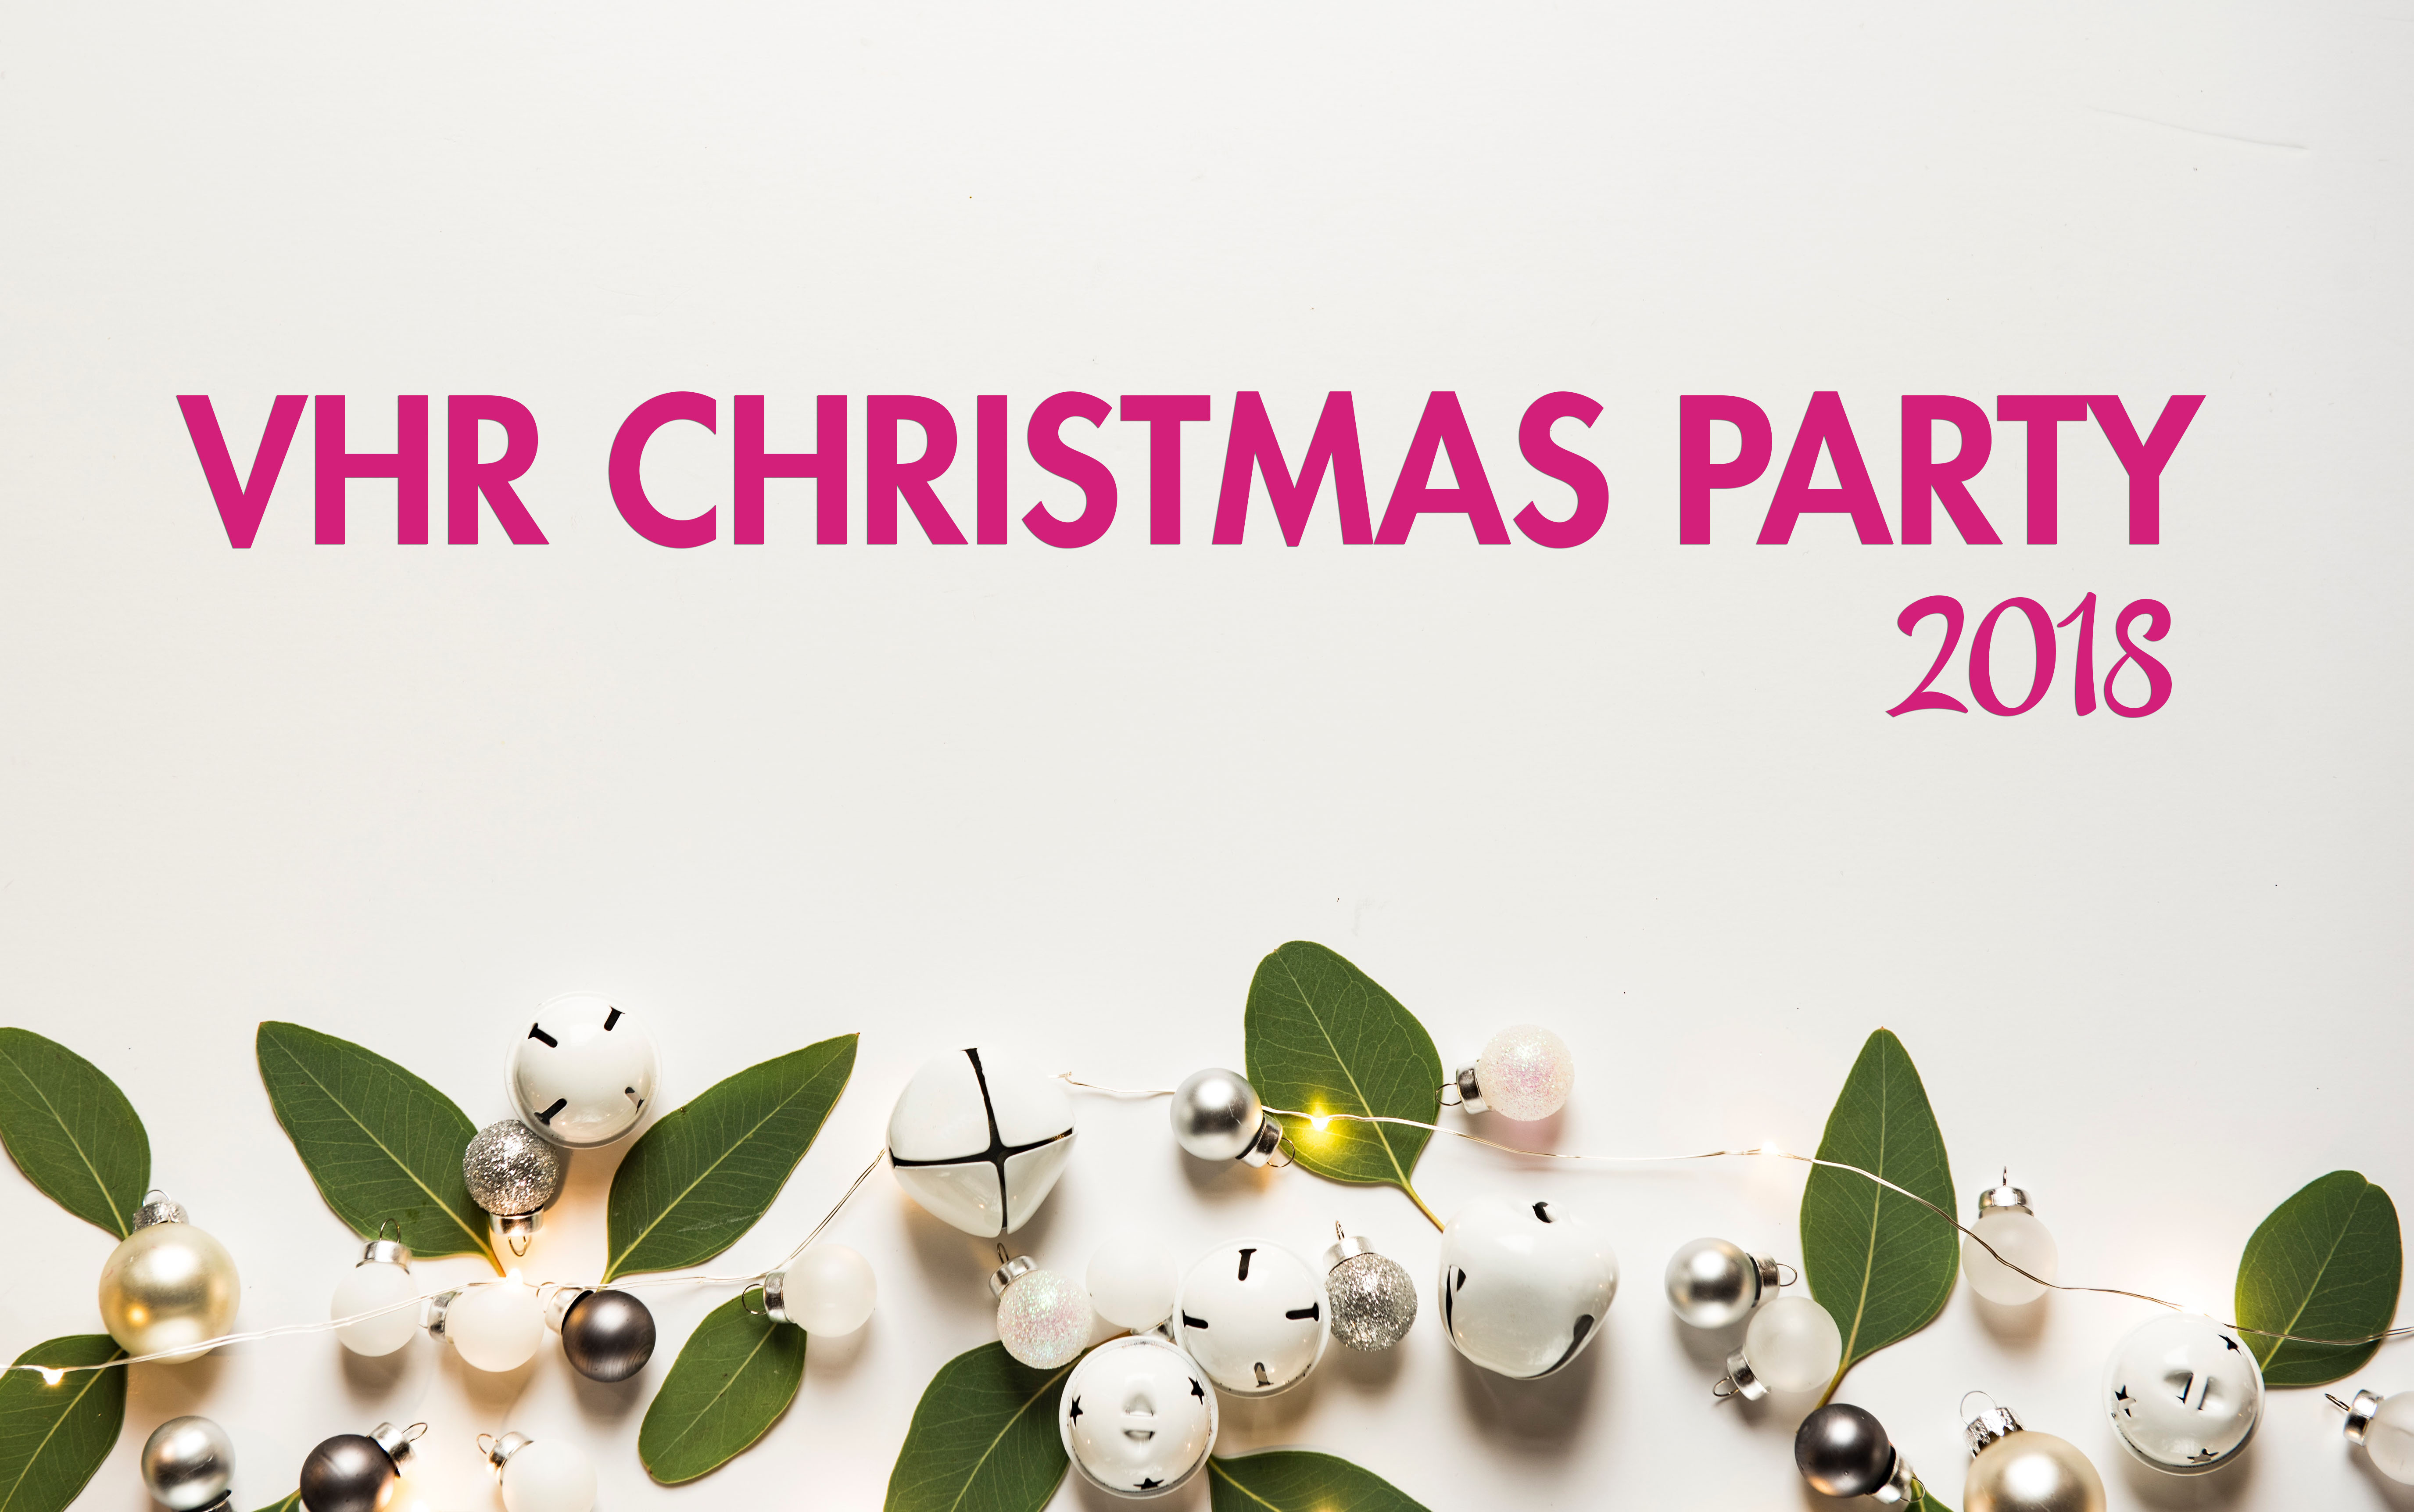 vhr christmas party 2018